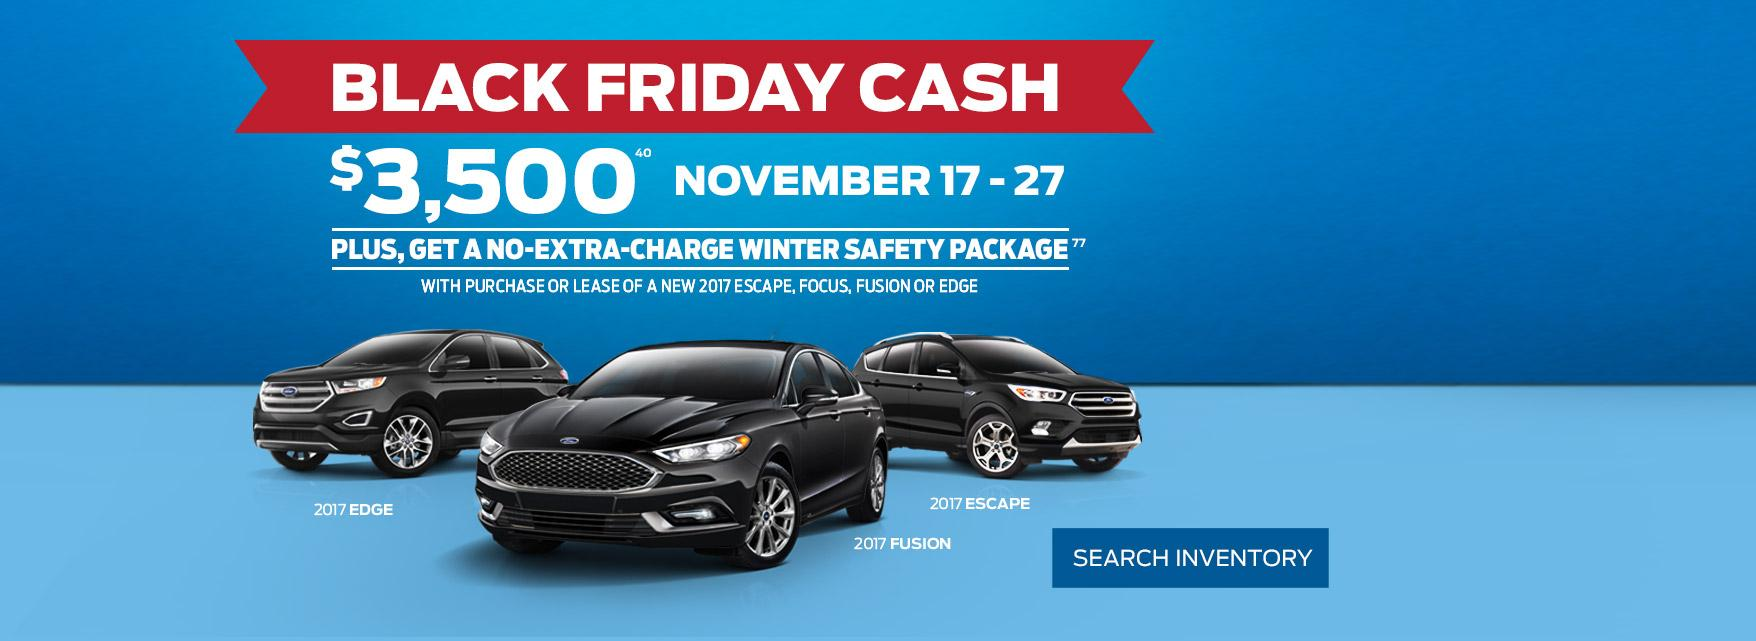 Black Friday Cash